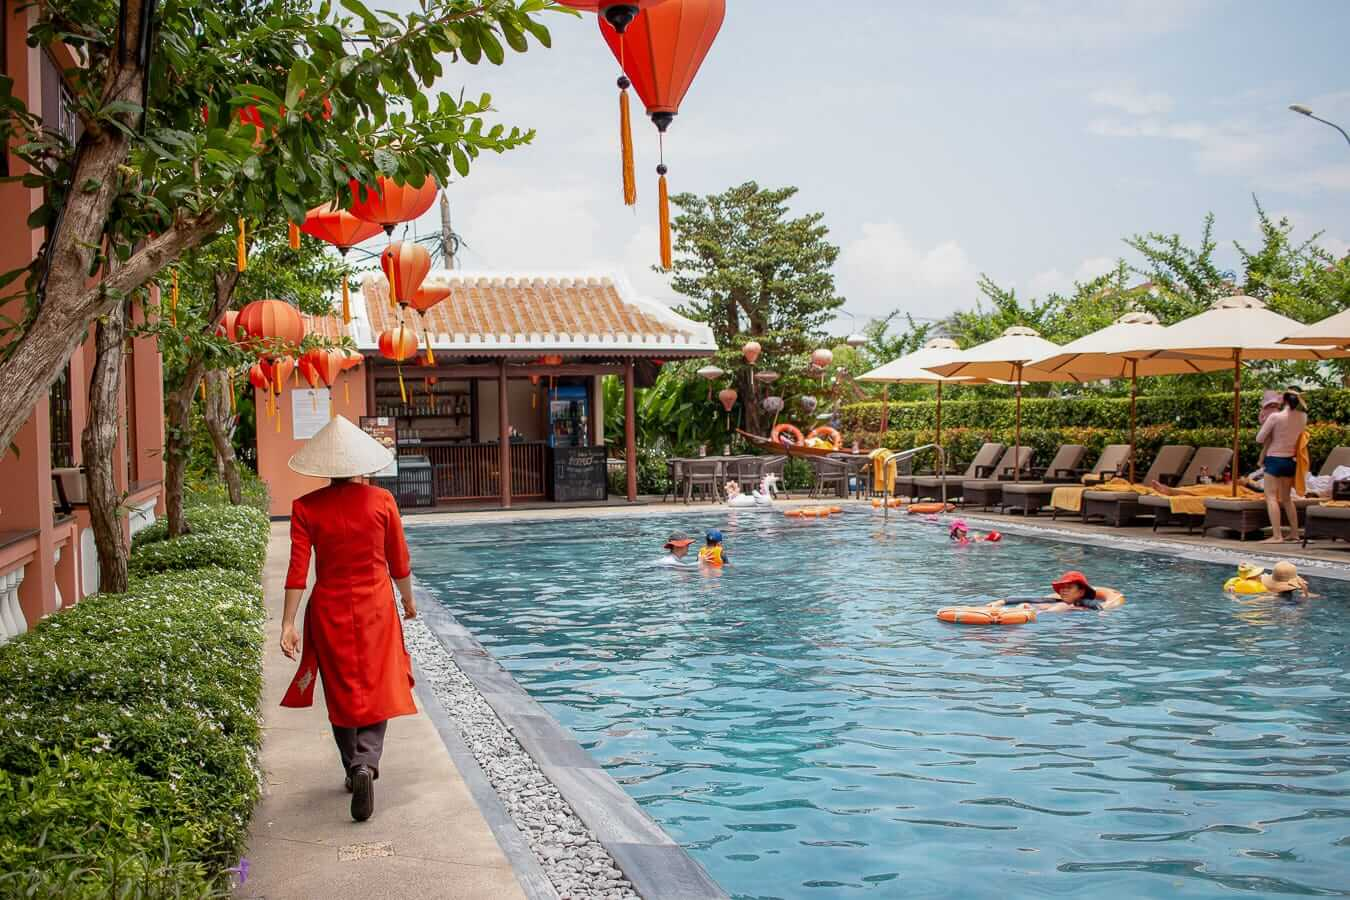 Allegro Hotel: Where to stay in Hoi An